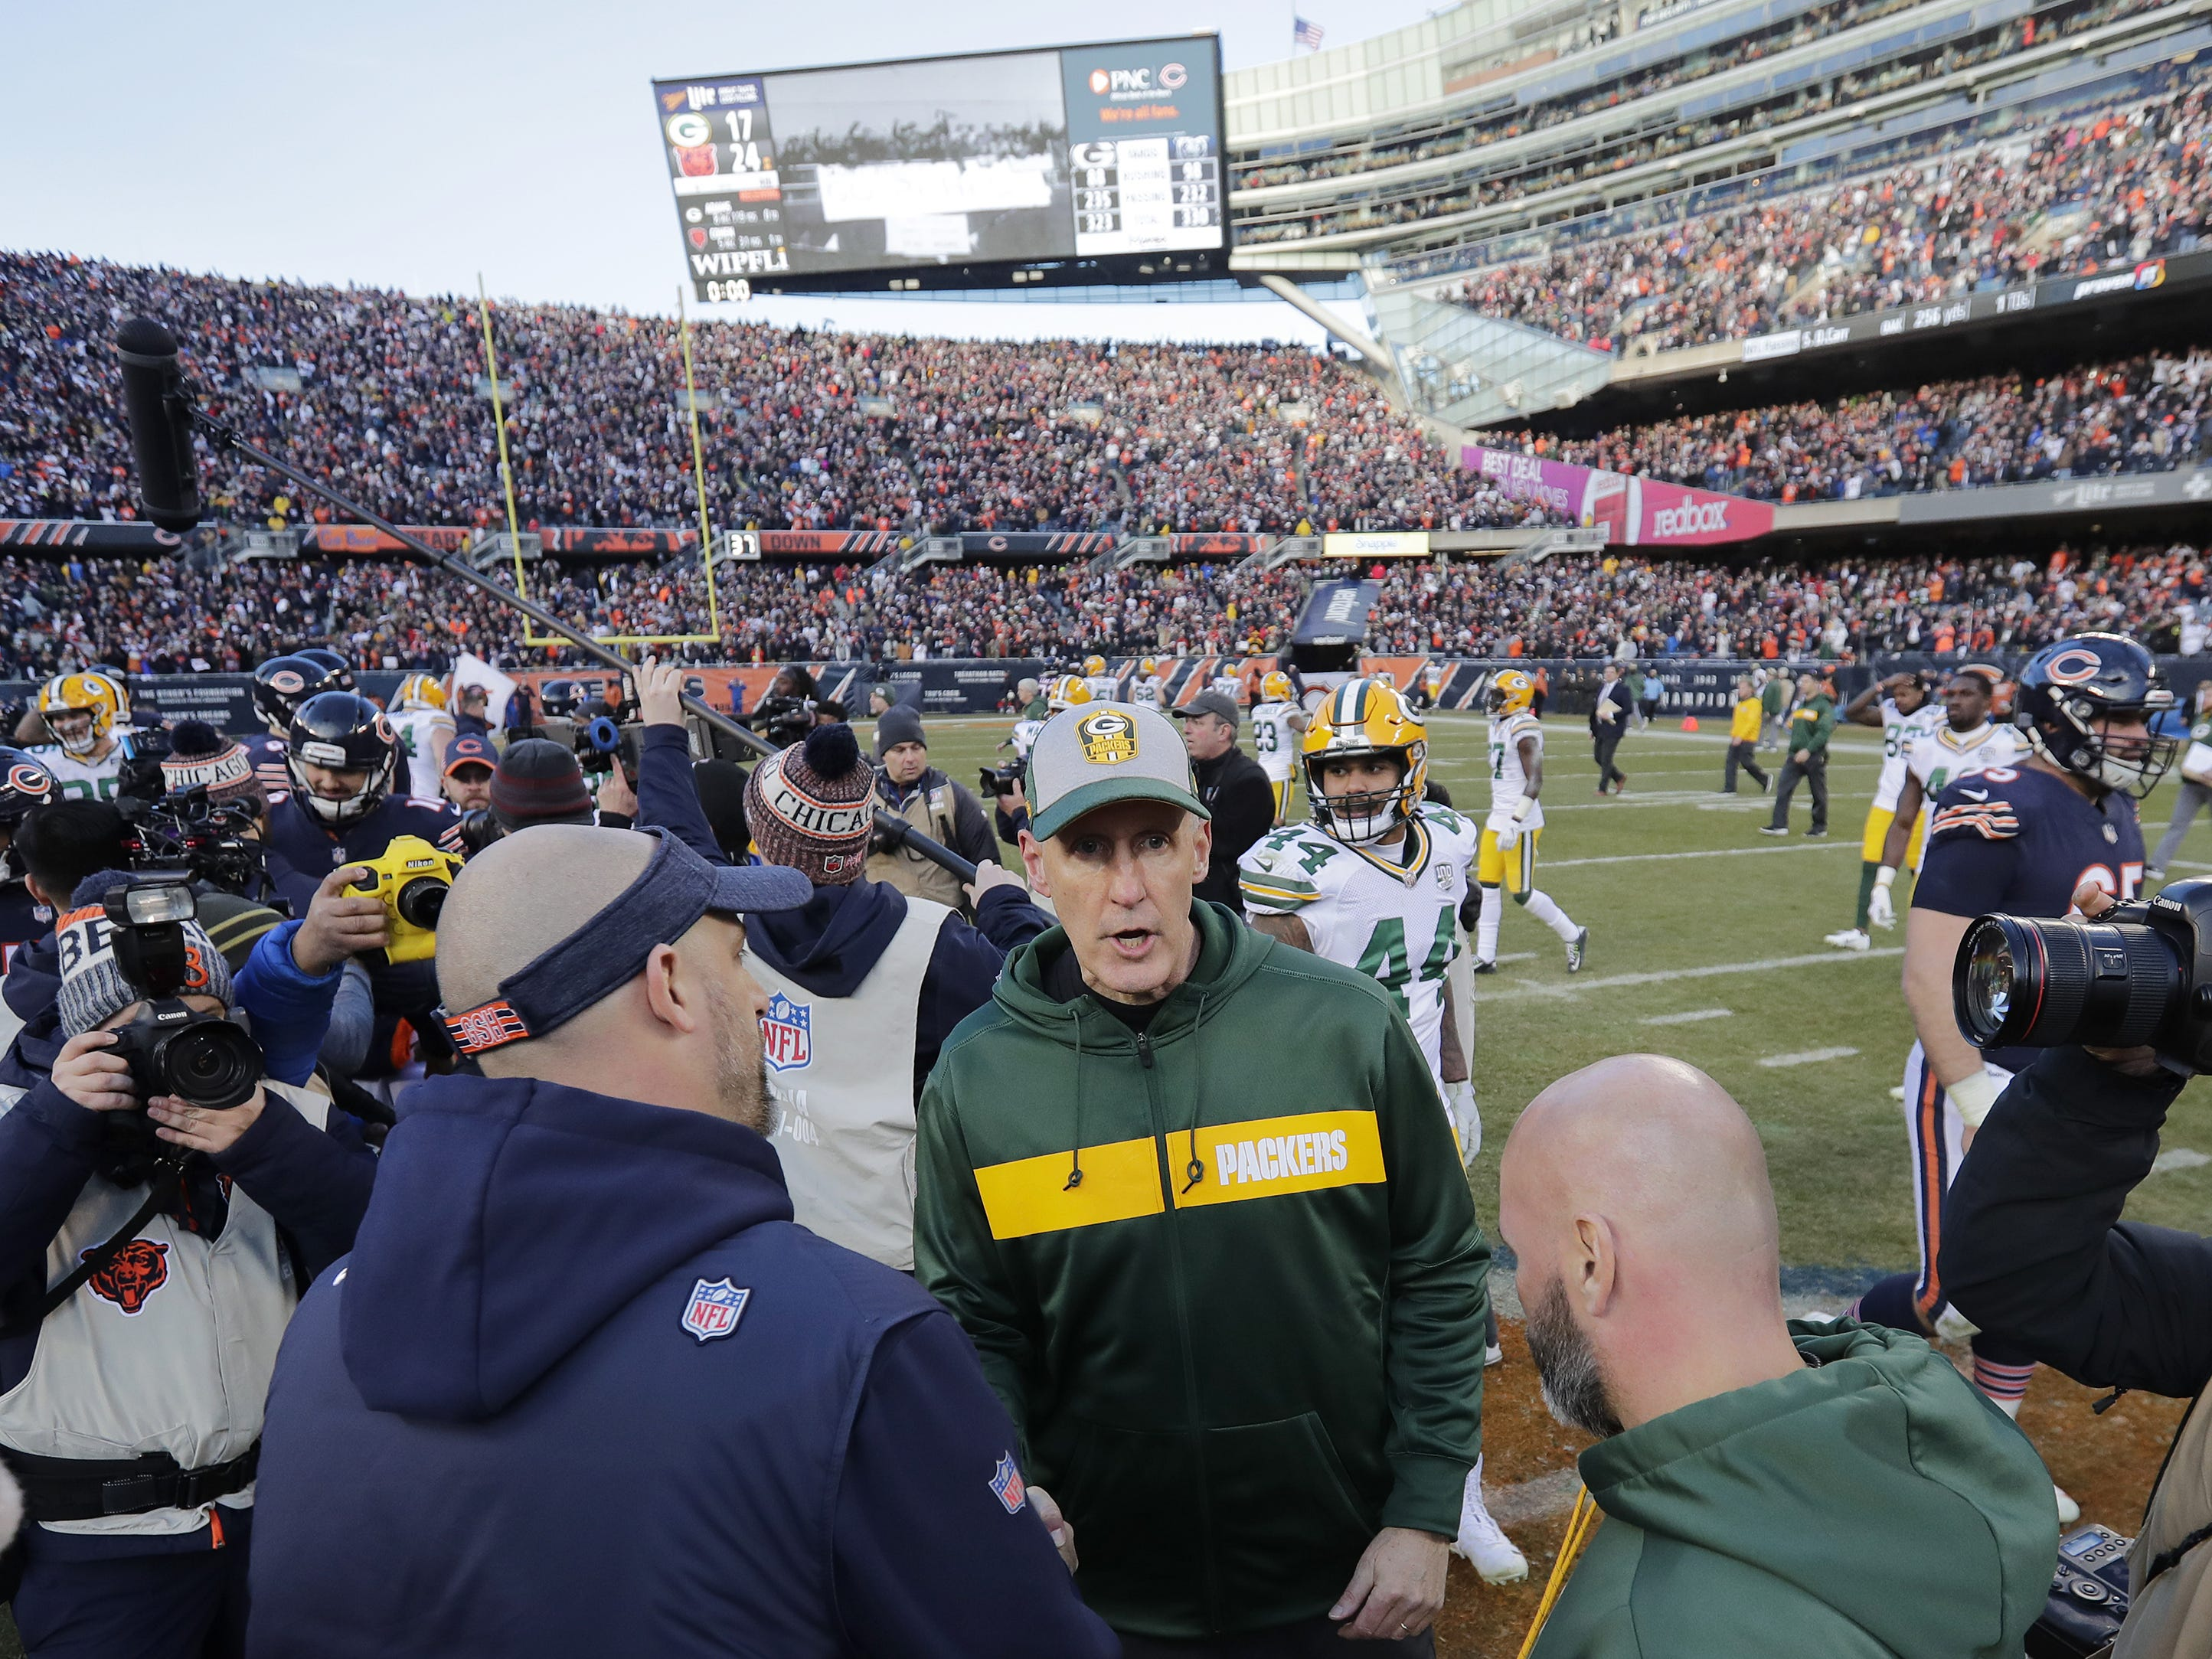 Green Bay Packers head coach Joe Philbin talks to Chicago Bears head coach Matt Nagy after the Bears beat the Packers at Soldier Field on Sunday, December 16, 2018 in Chicago, Illinois. Adam Wesley/USA TODAY NETWORK-Wis